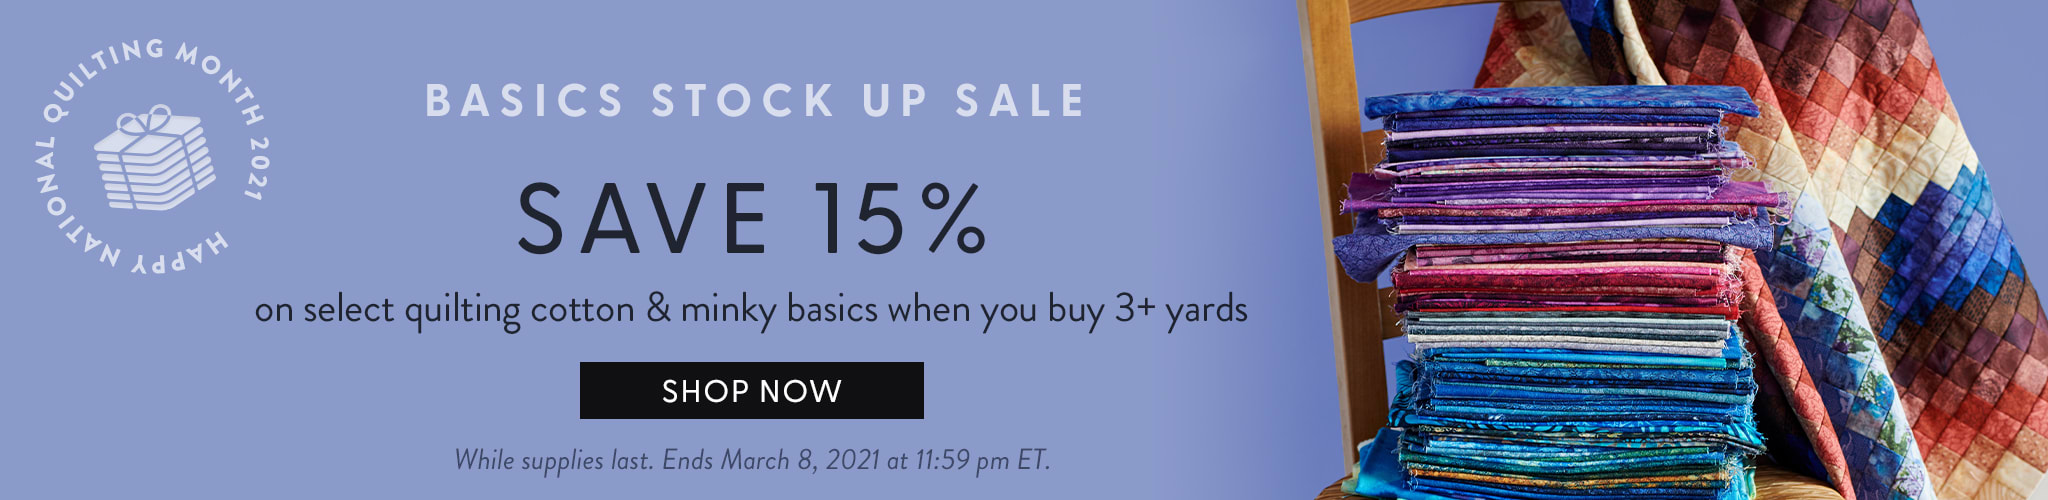 Basics Stock up Sale - Save 15% when you buy 3 or more yards of selects quilting solids and blenders